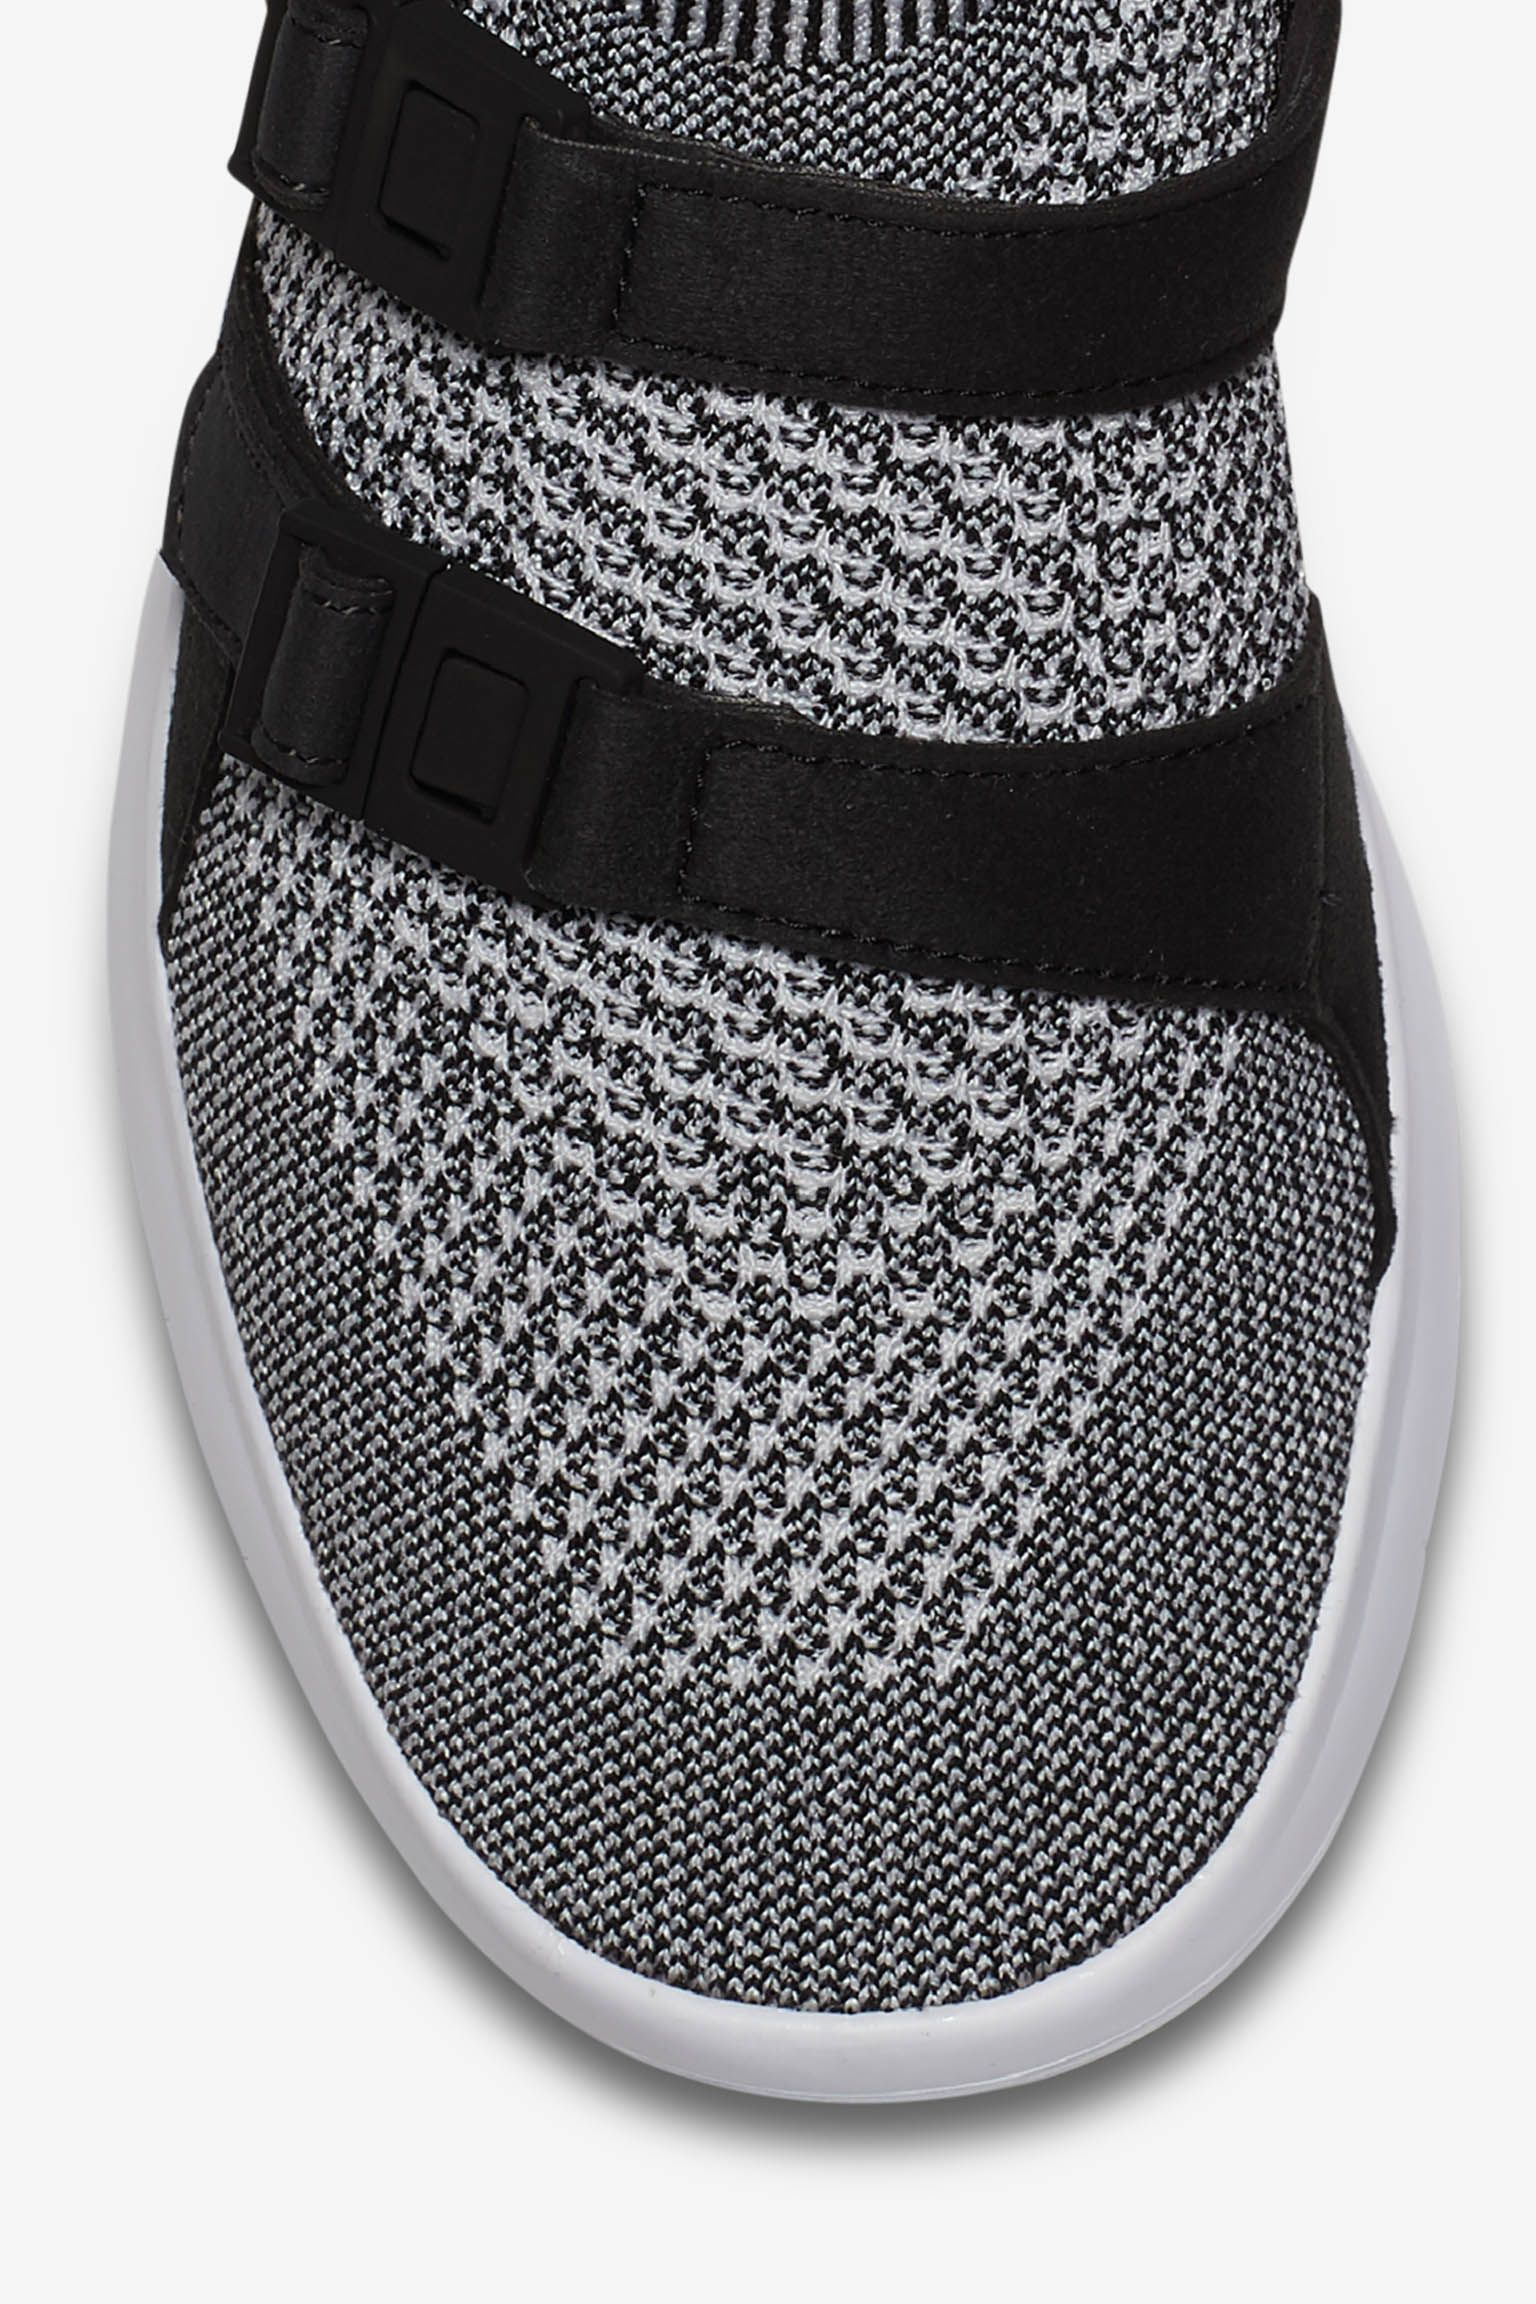 Womens Nike Air Sock Racer Ultra Flyknit Black White Snkrs Wire Harness Socks